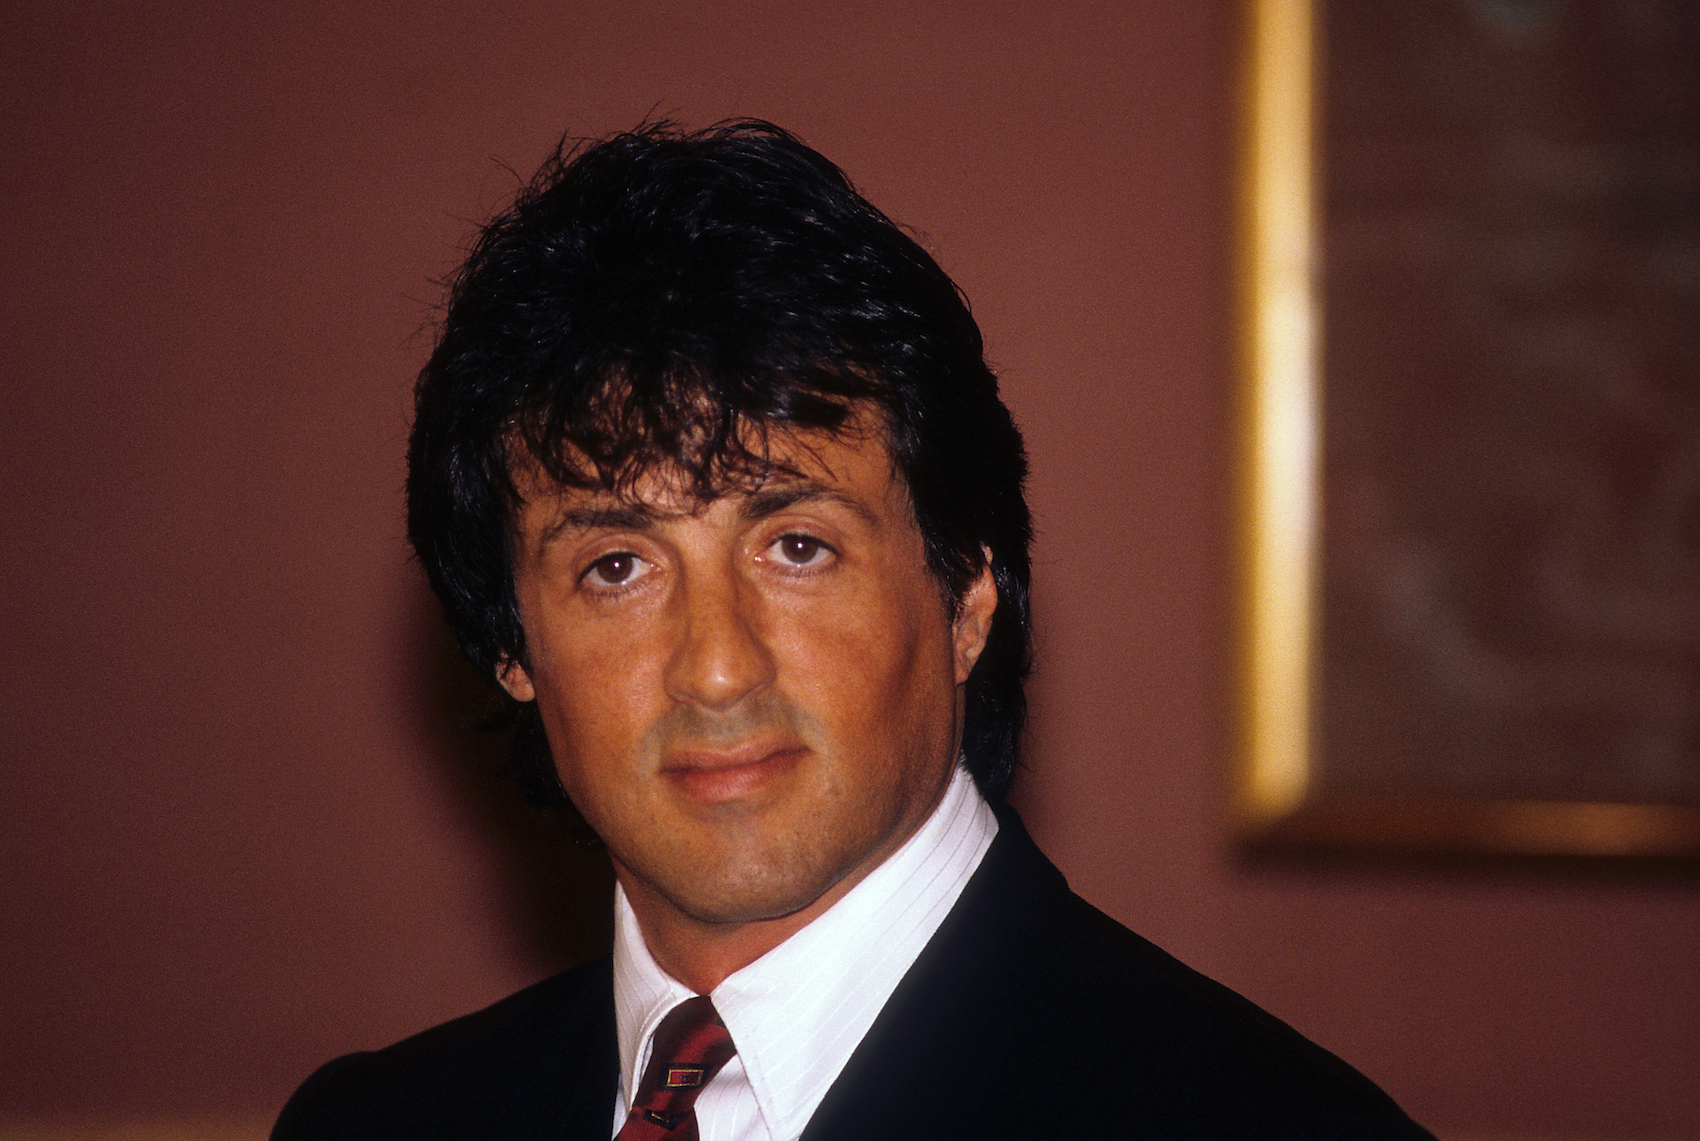 Sylvester Stallone, 1987. (Photo by Getty Images)